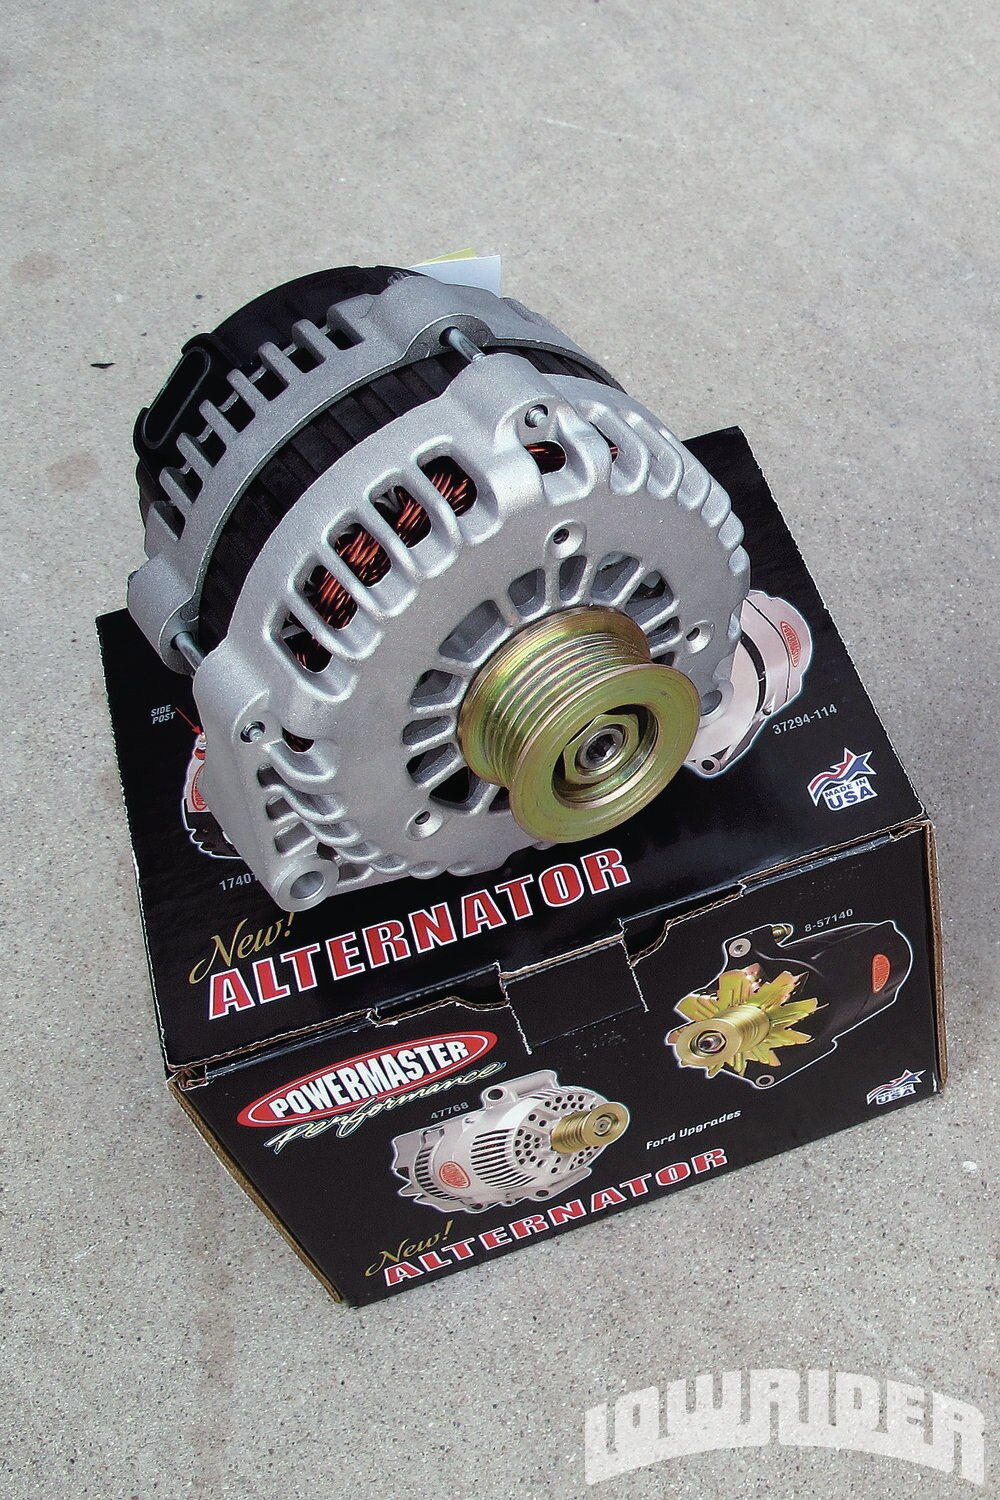 <strong>1</strong>. This Powermaster Performance alternator is going to give our engine high amperage power for all of our electrical accessories.